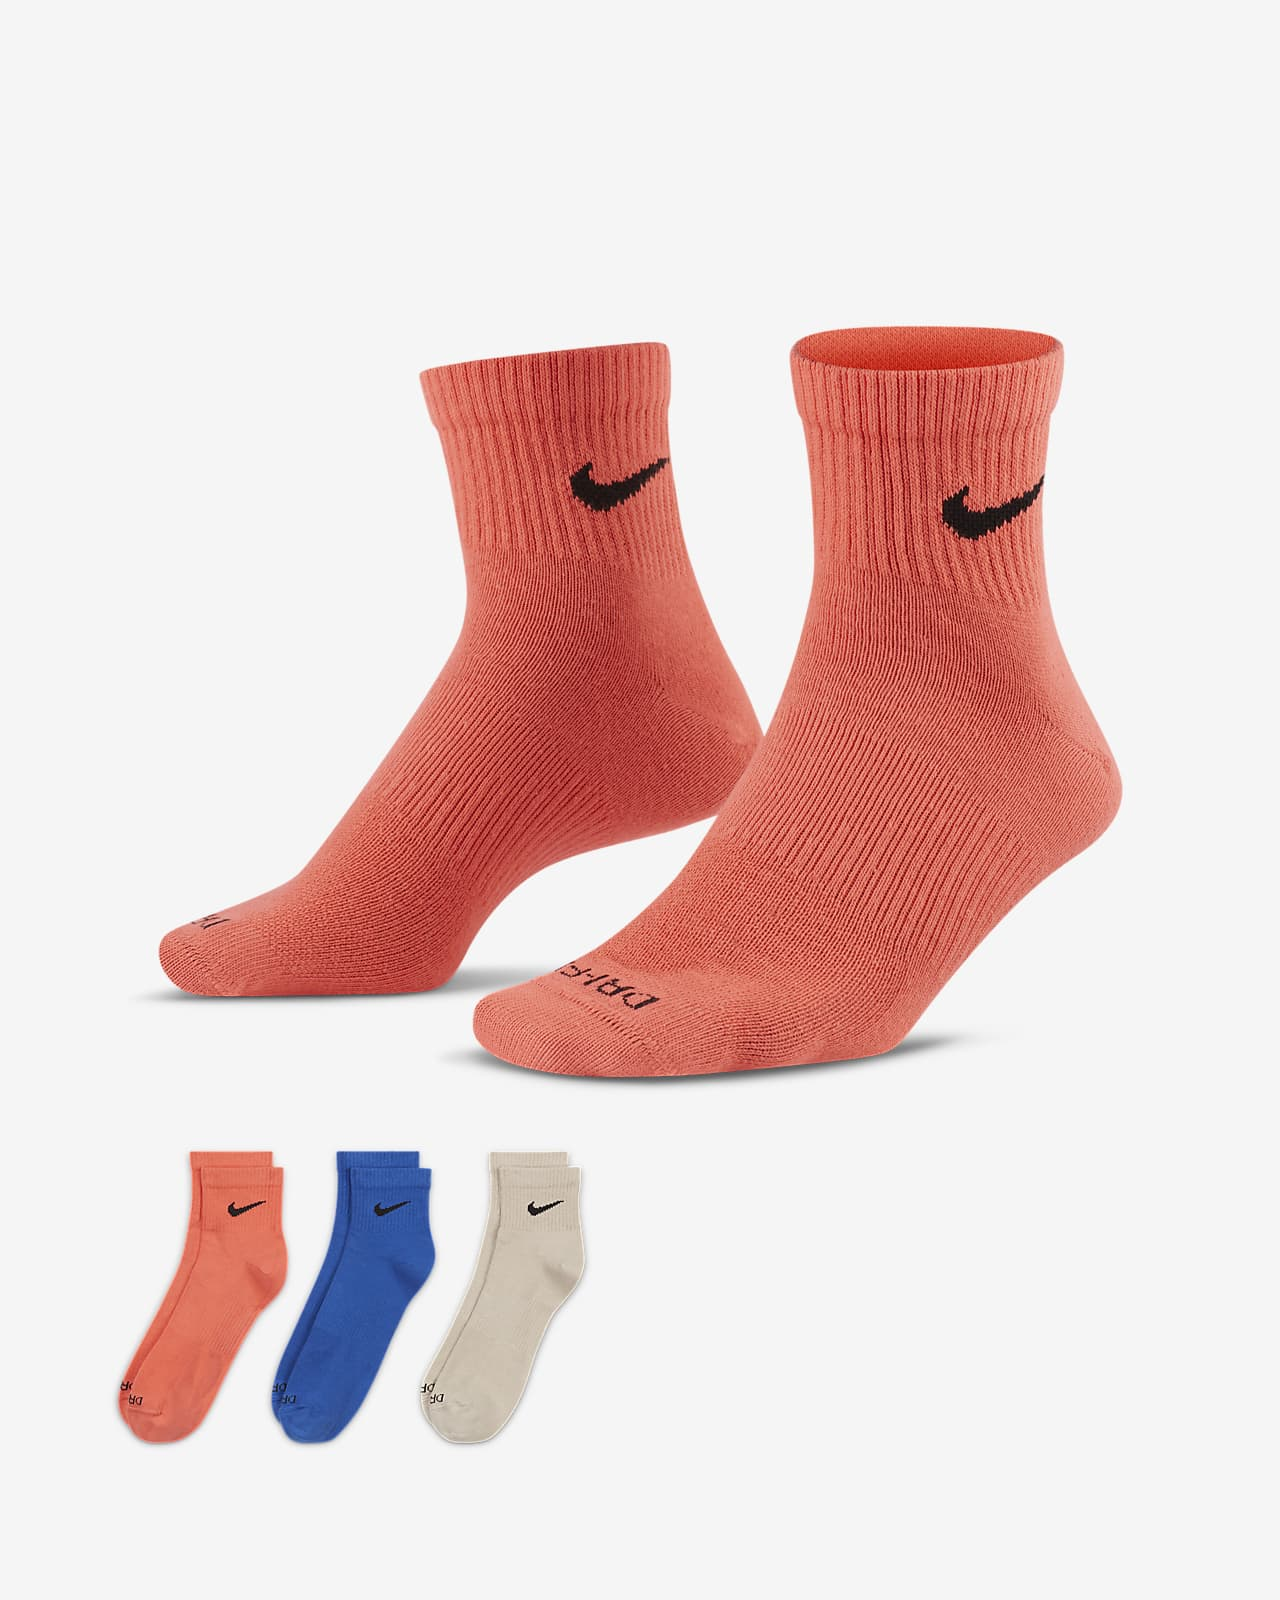 Chaussettes de training Nike Everyday Plus Lightweight (3 paires)